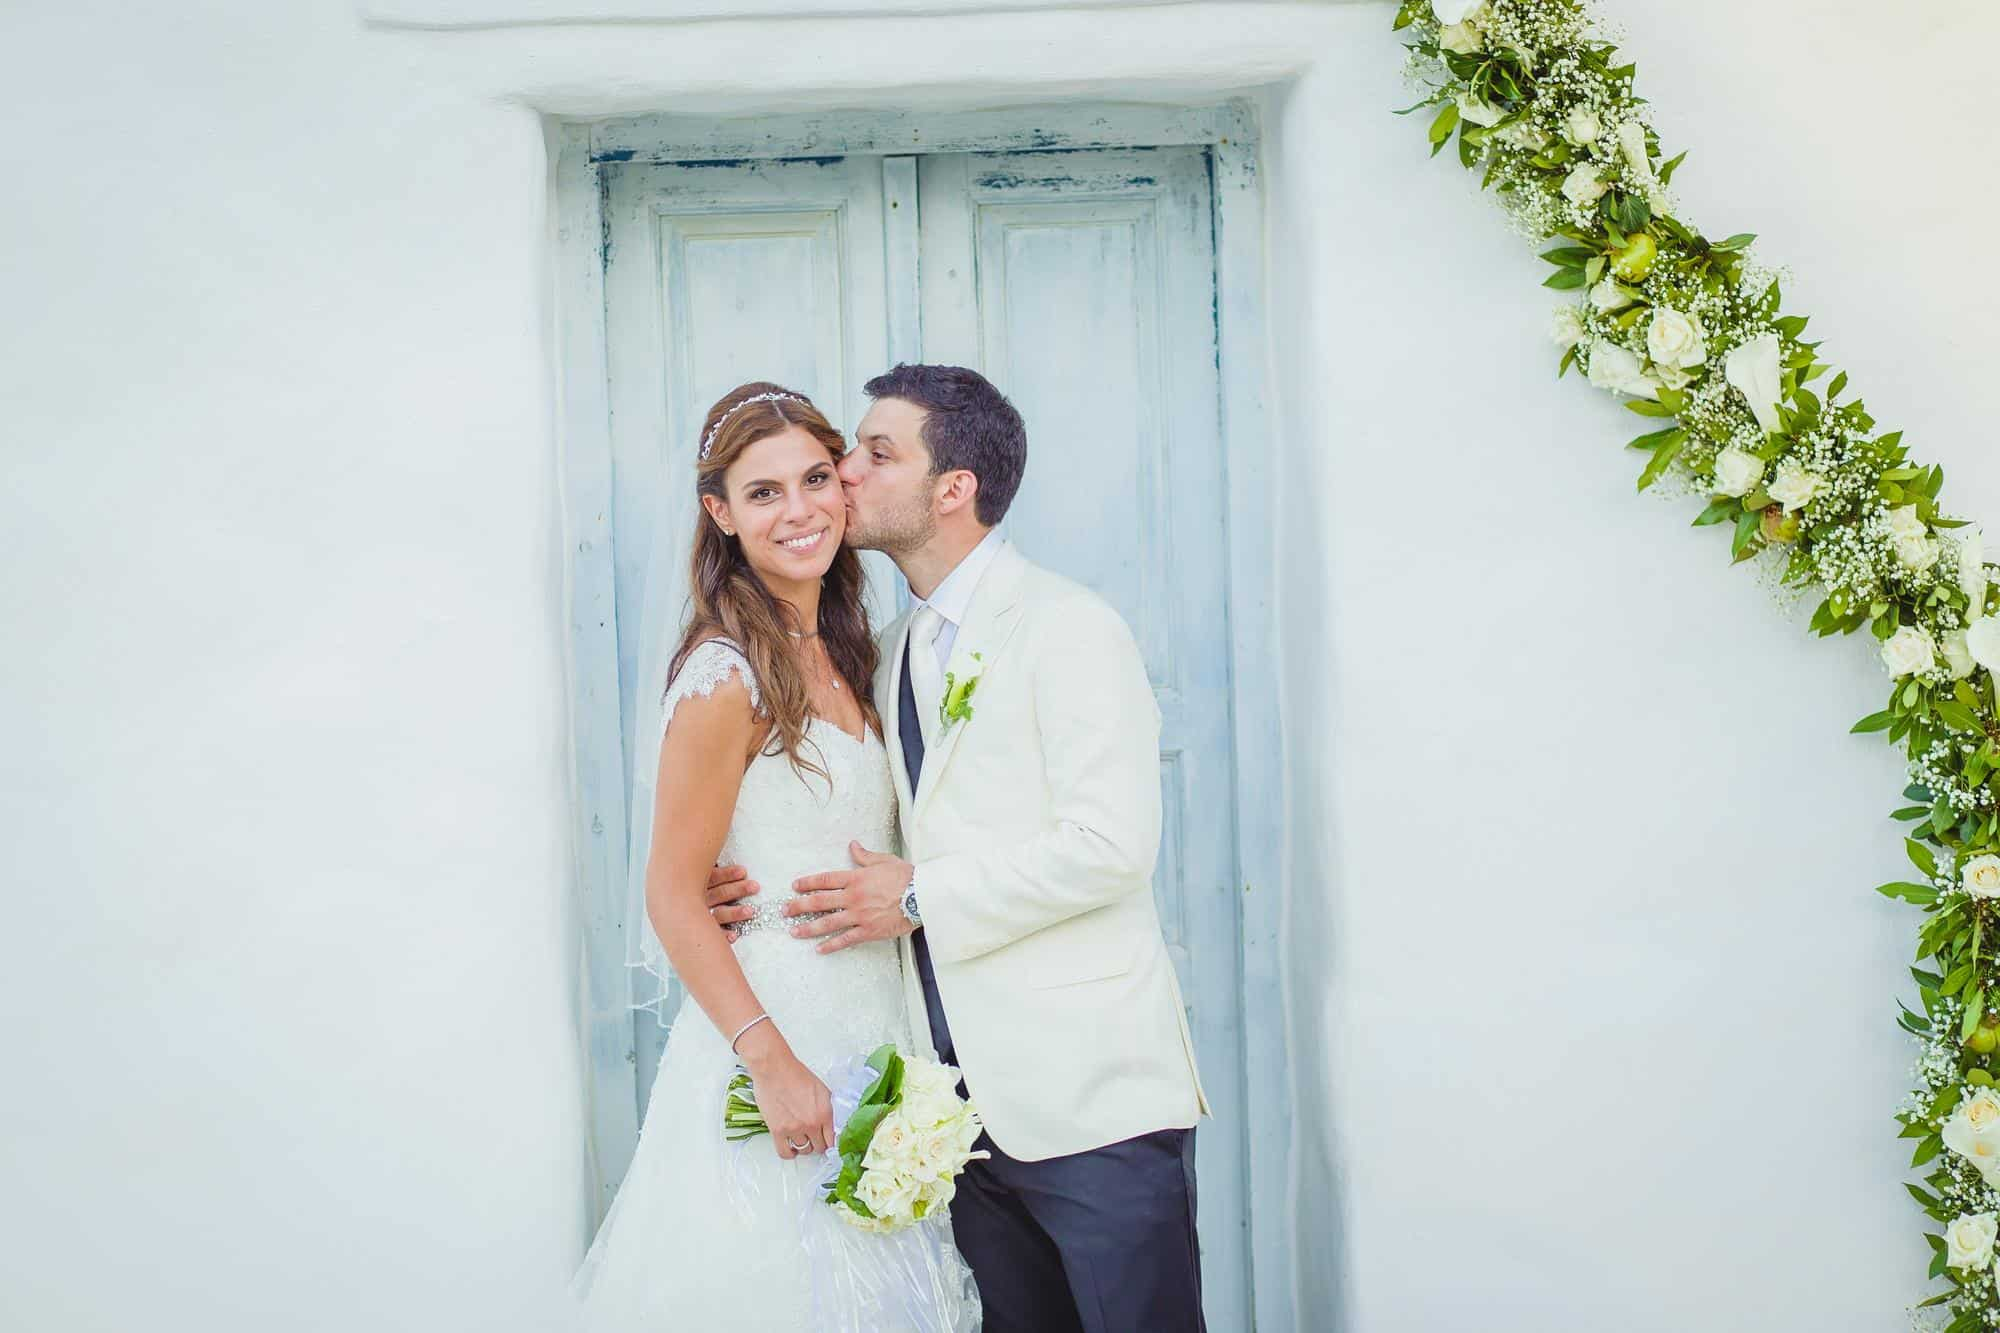 ANTONIS & STAICY | WEDDING IN ISLAND - ATHENS RIVERA Wedding in island athens riviera 0051 2501